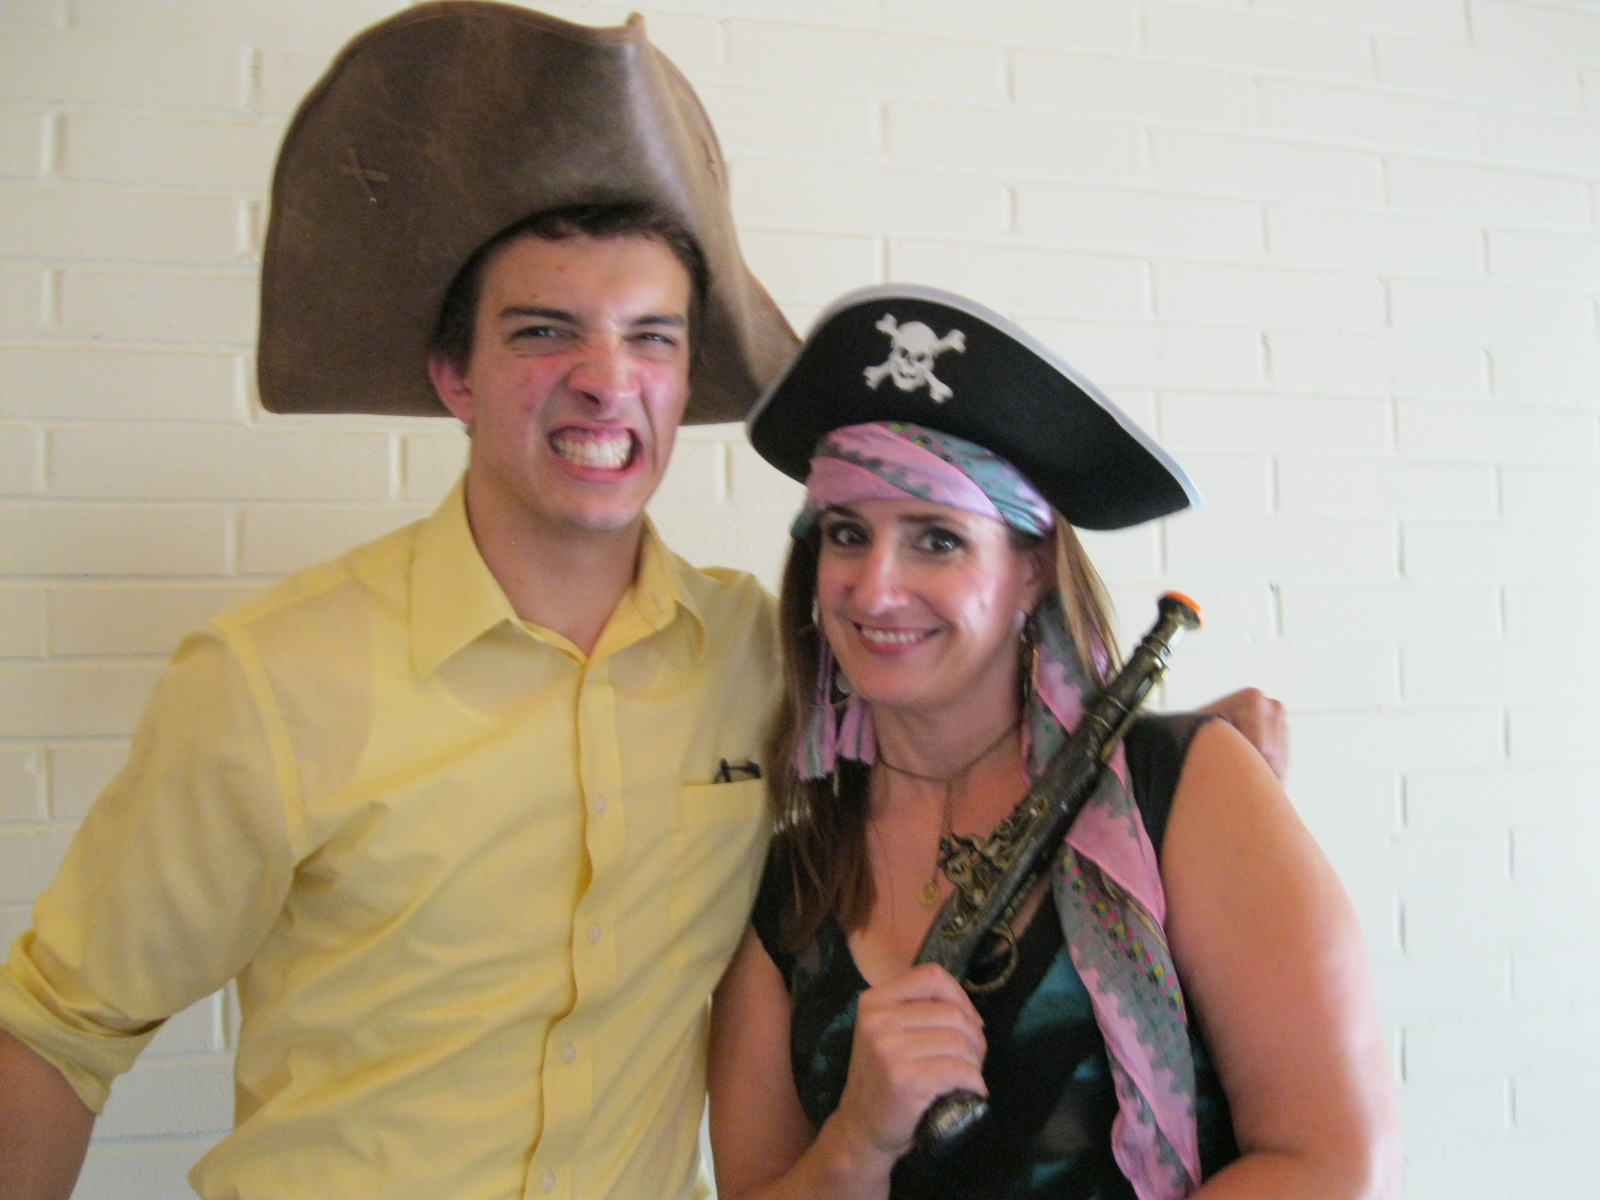 Anthony & Fran, Pirate King & Ruth